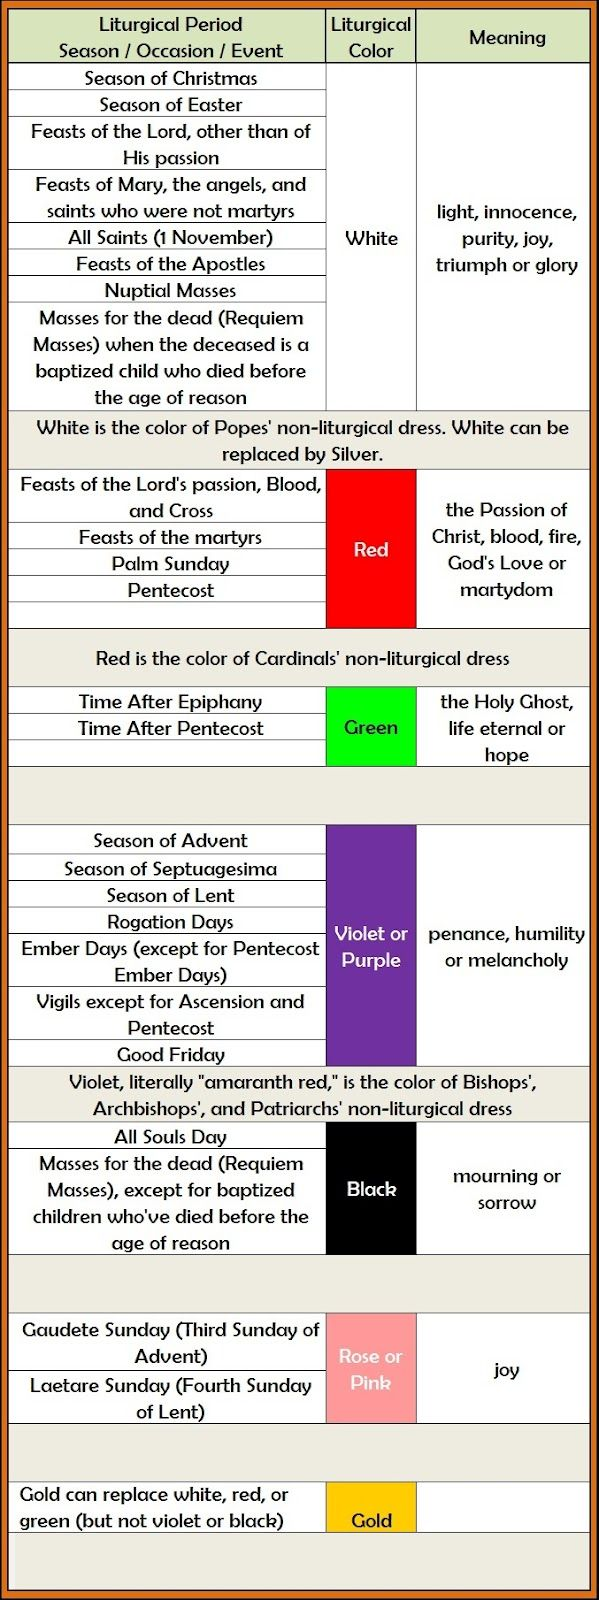 Liturgical Calendar Ideas : Best liturgical colors ideas on pinterest catholic